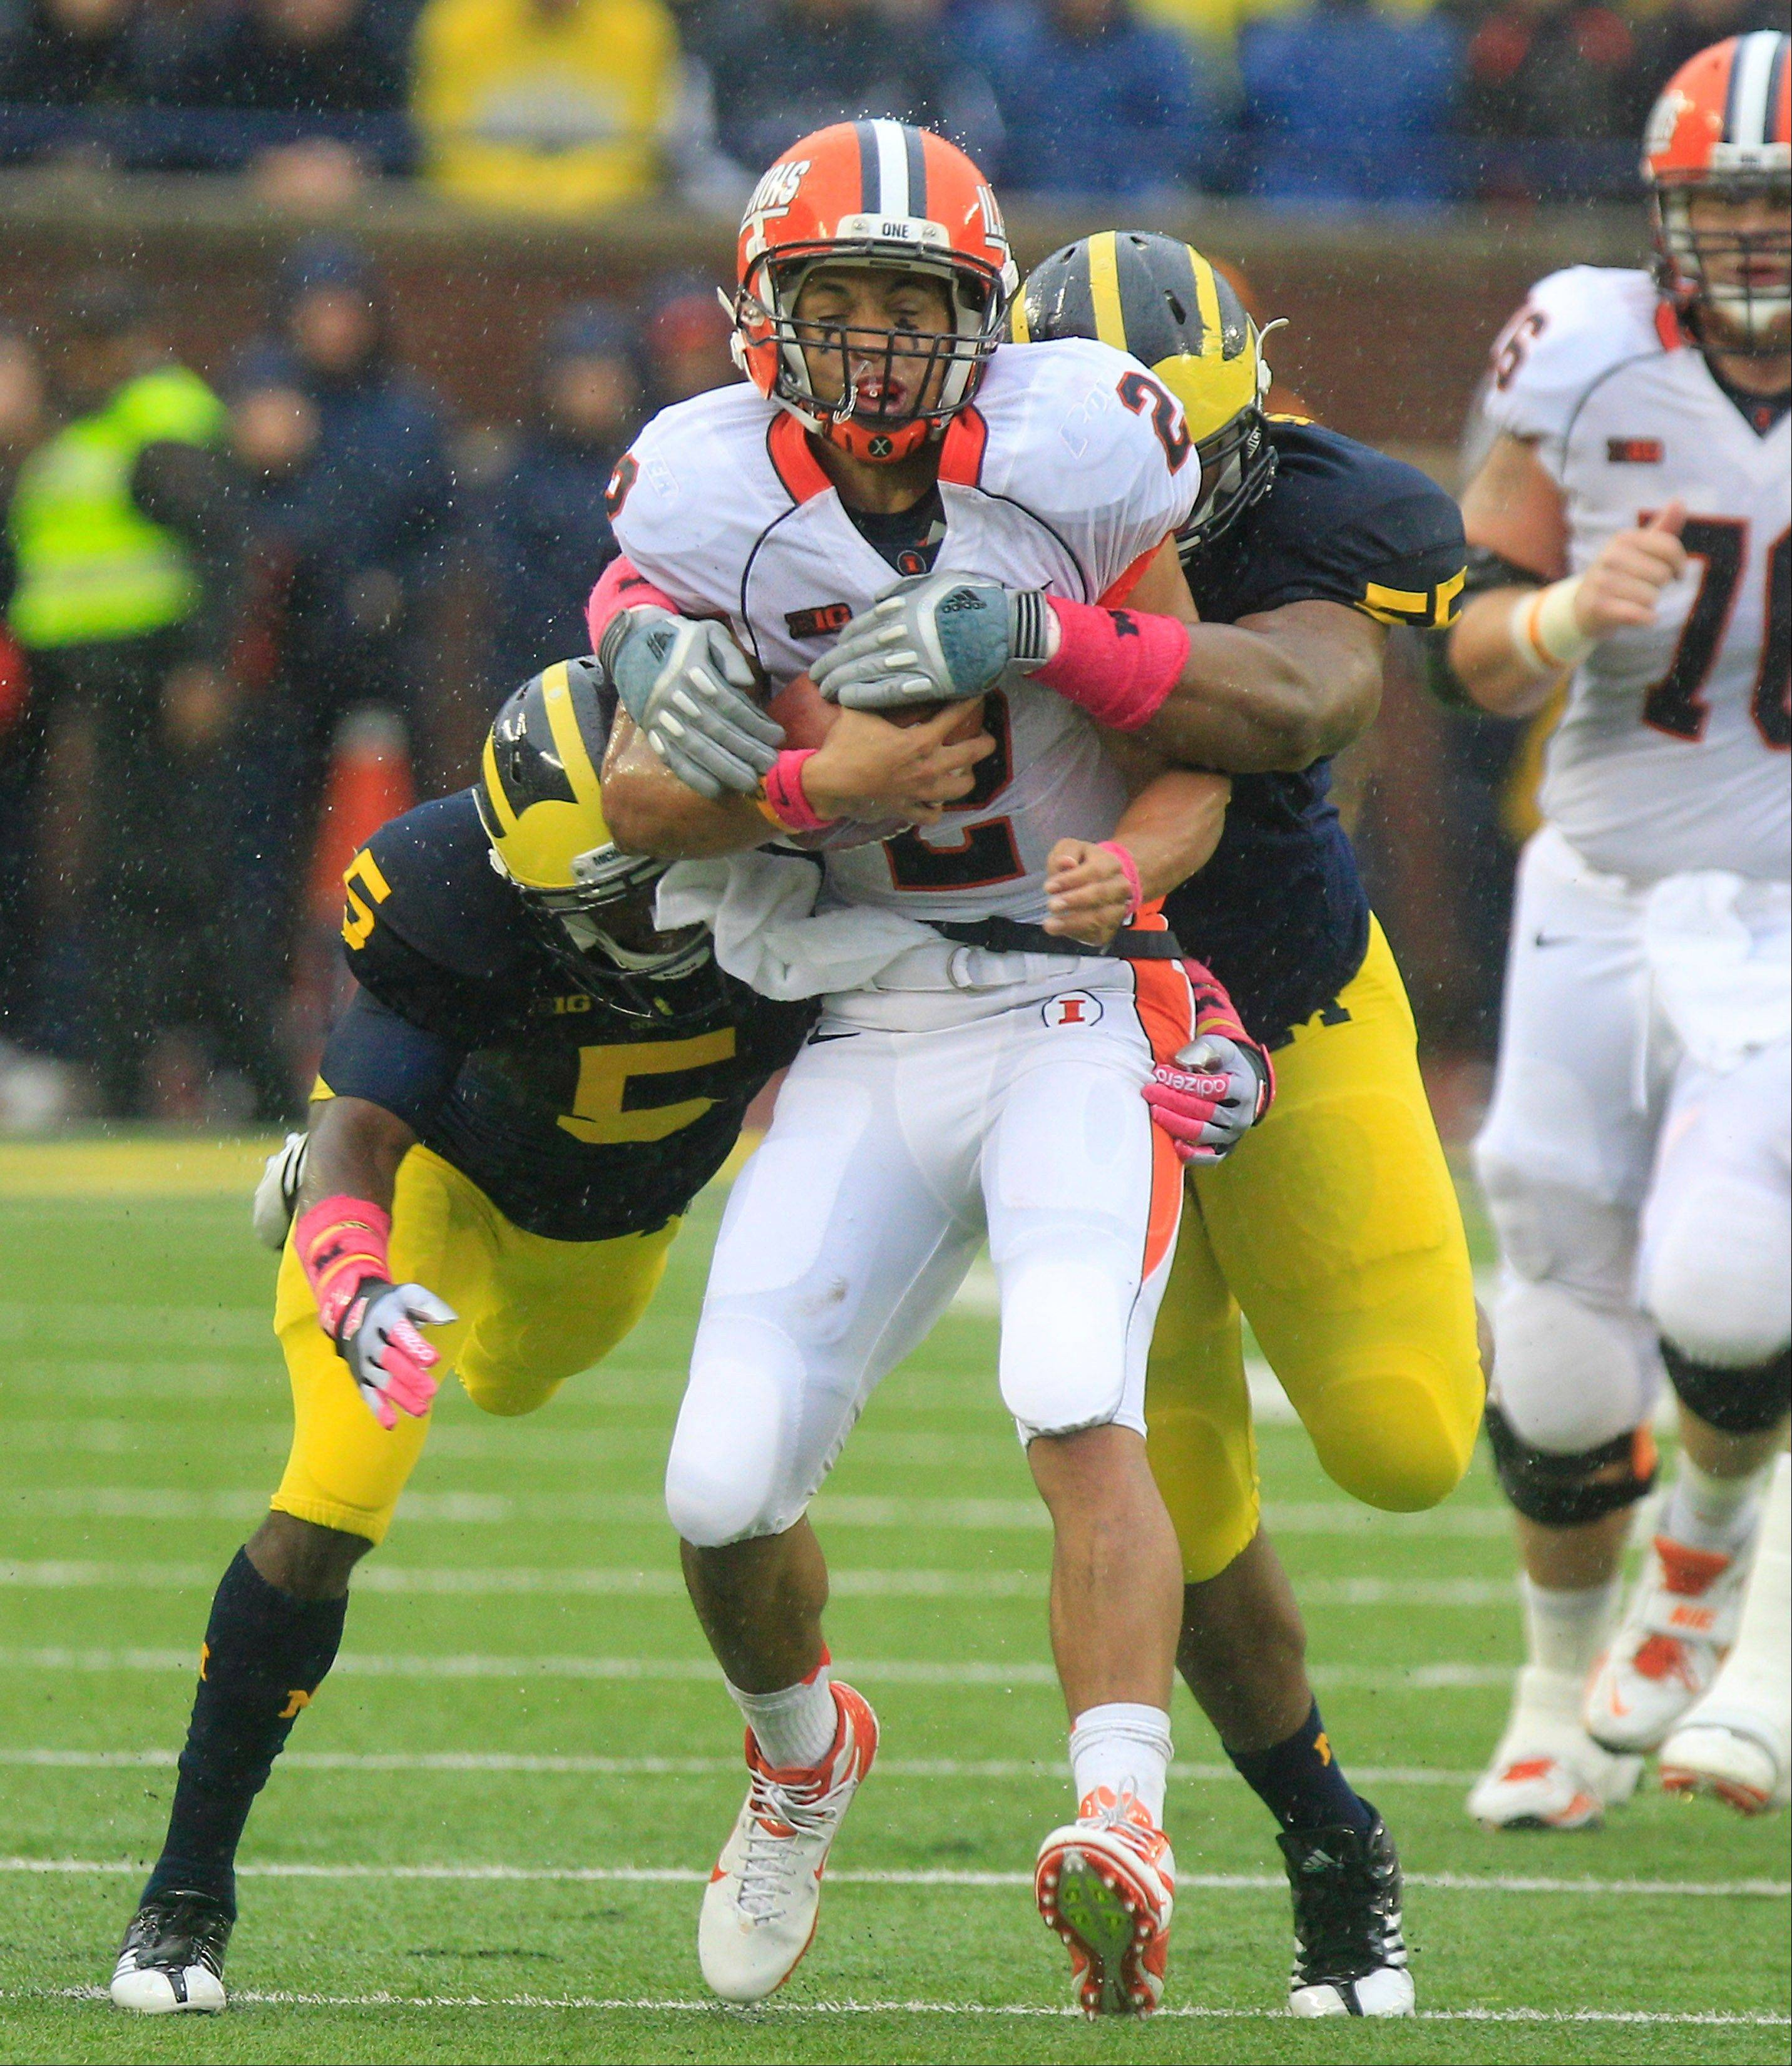 Michigan cornerback Courtney Avery (5) and defensive tackle Jibreel Black wrap up Illinois quarterback Nathan Scheelhaase in the second quarter of the Wolverines� 45-0 pummeling of the Illini on Oct. 13. Scheelhaase was injured on the play.